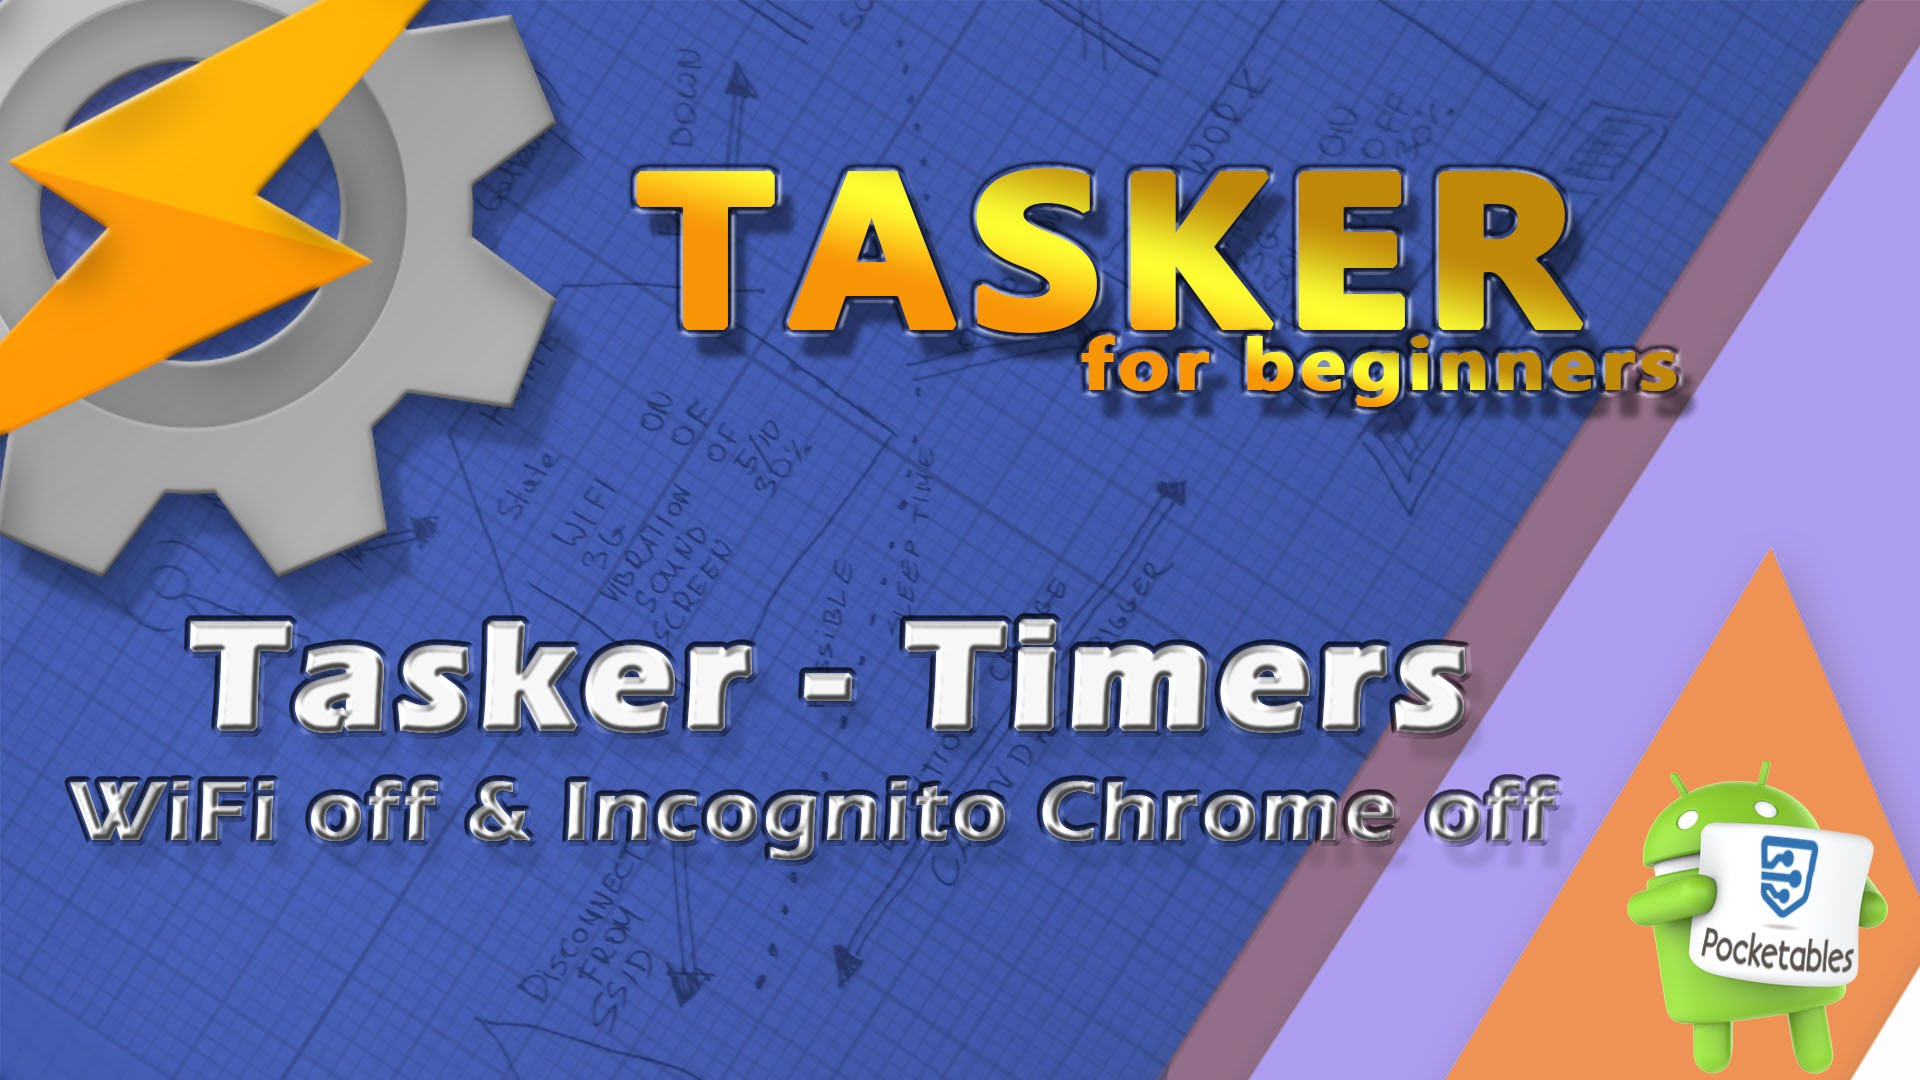 Tasker - timers, how to do this correctly  - Not Enough TECH